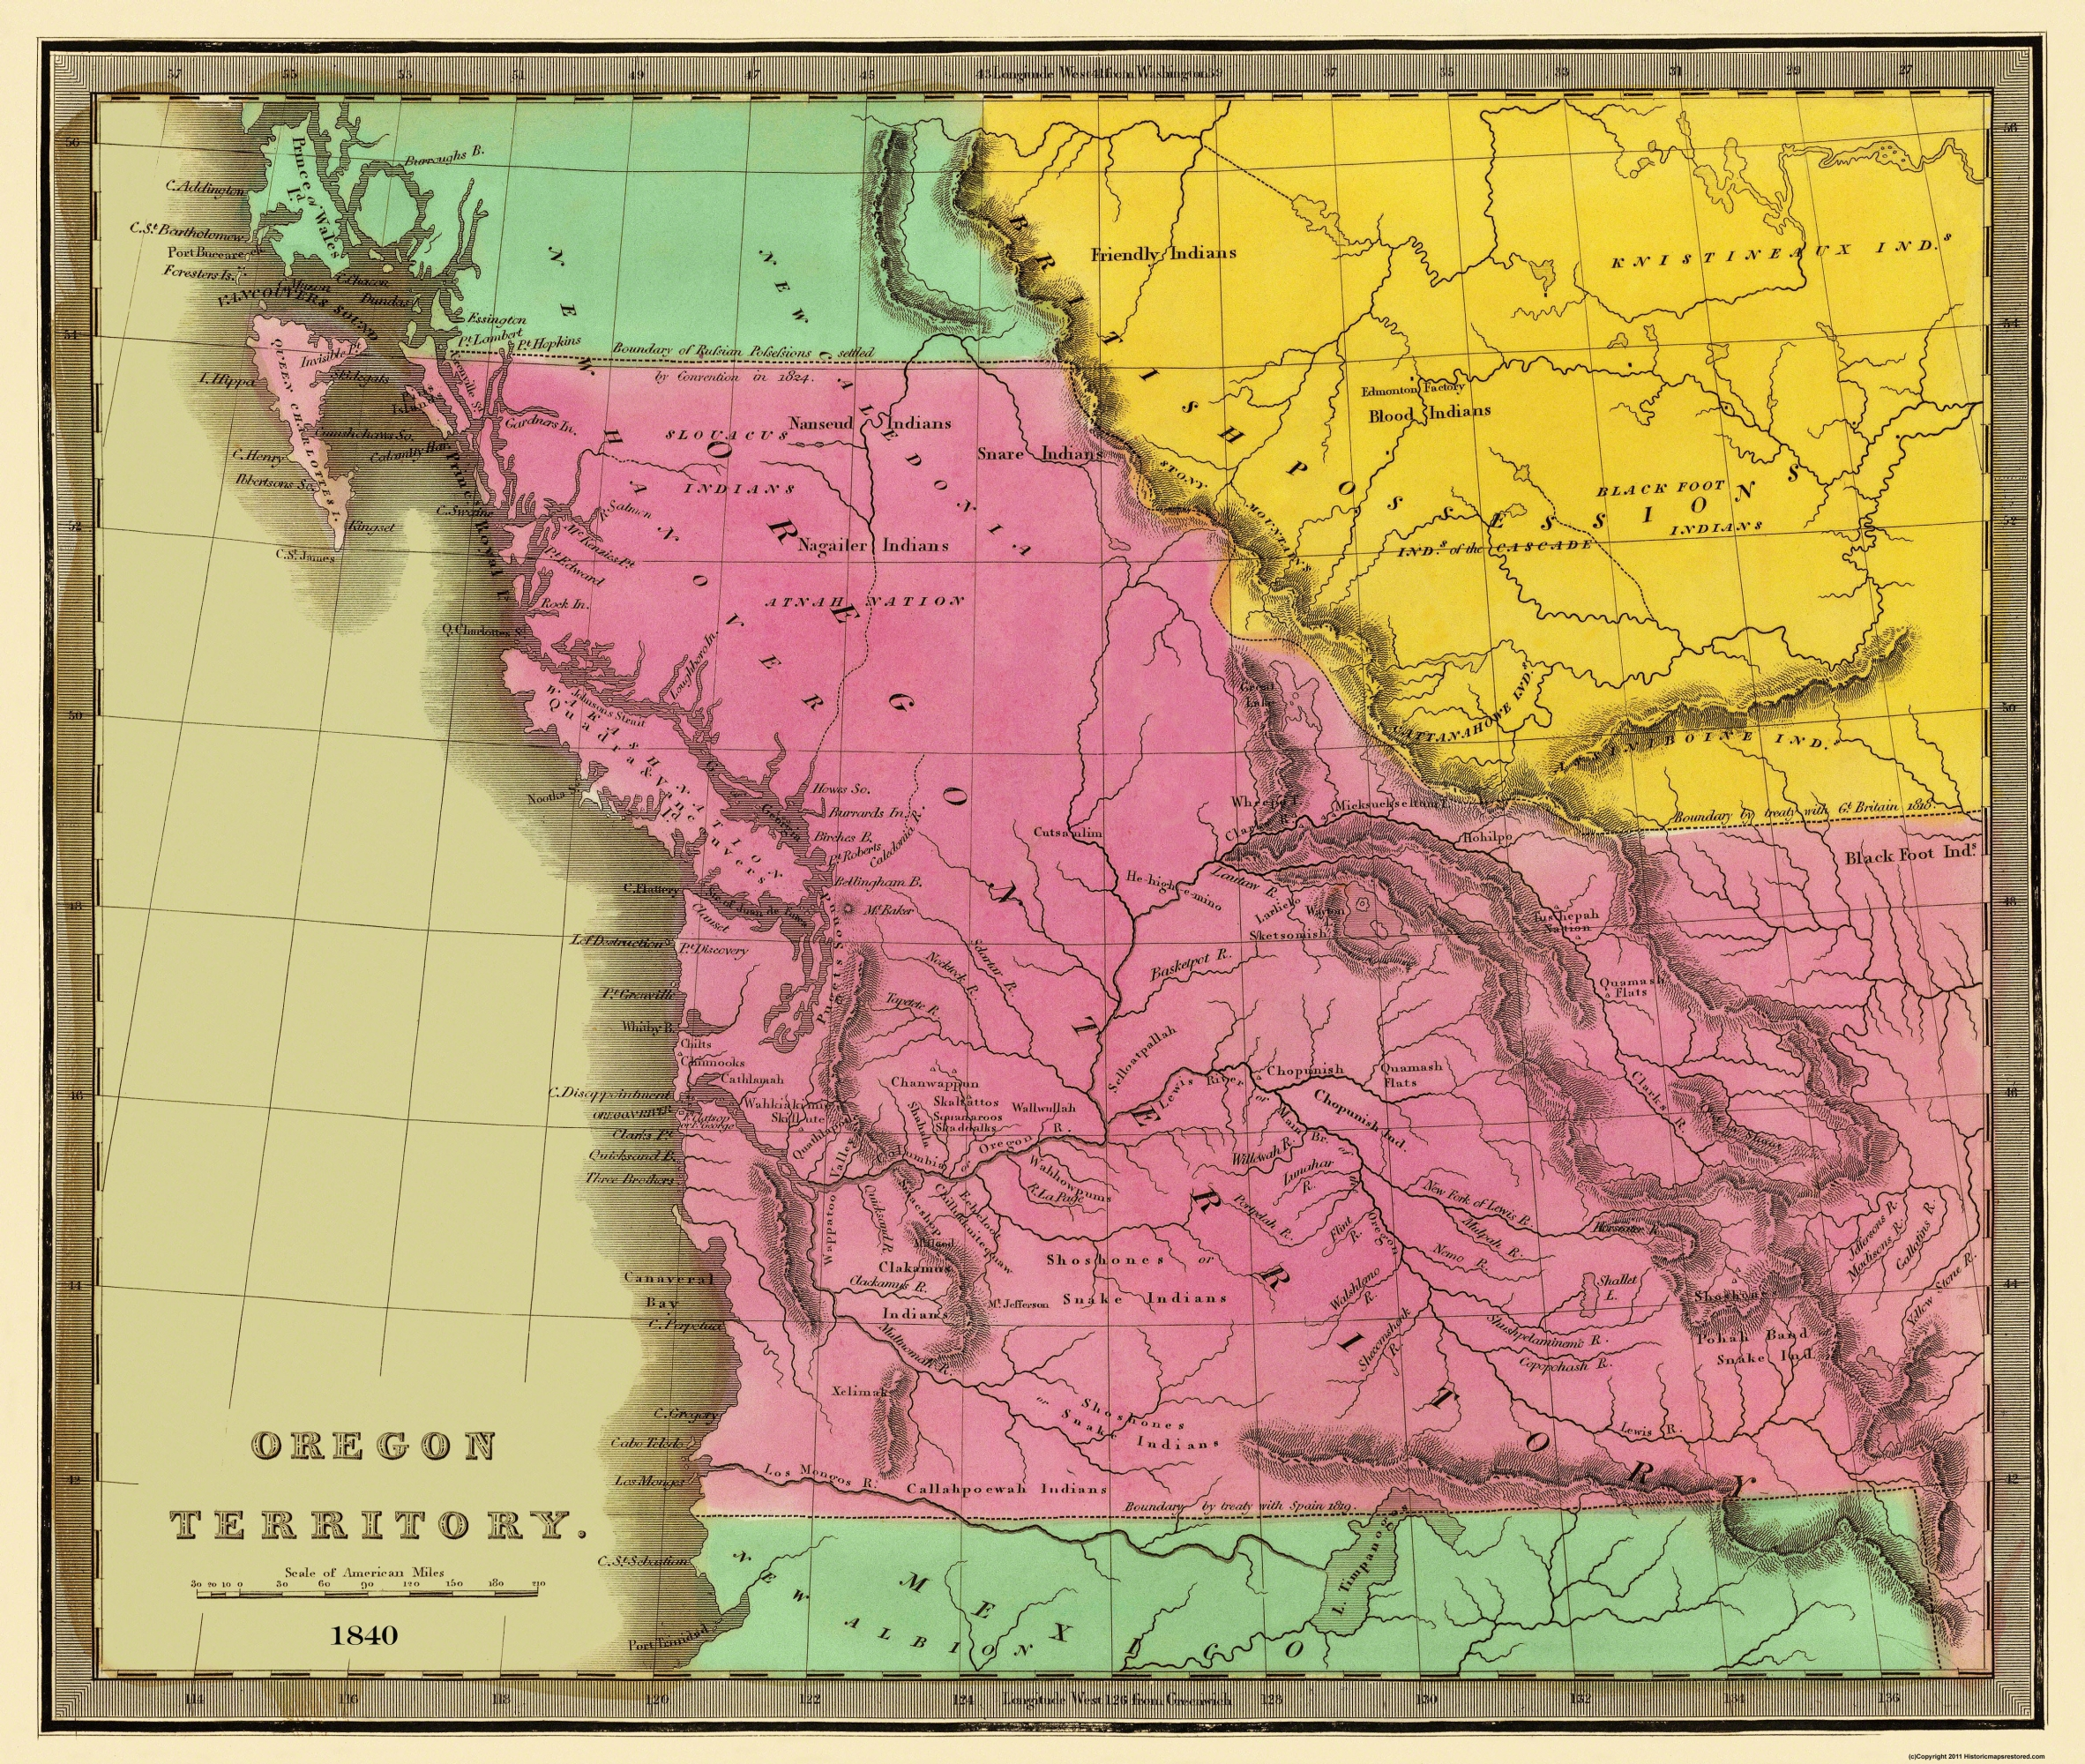 Old State Map Oregon Territory Greenleaf - Fort clatsop on map of us